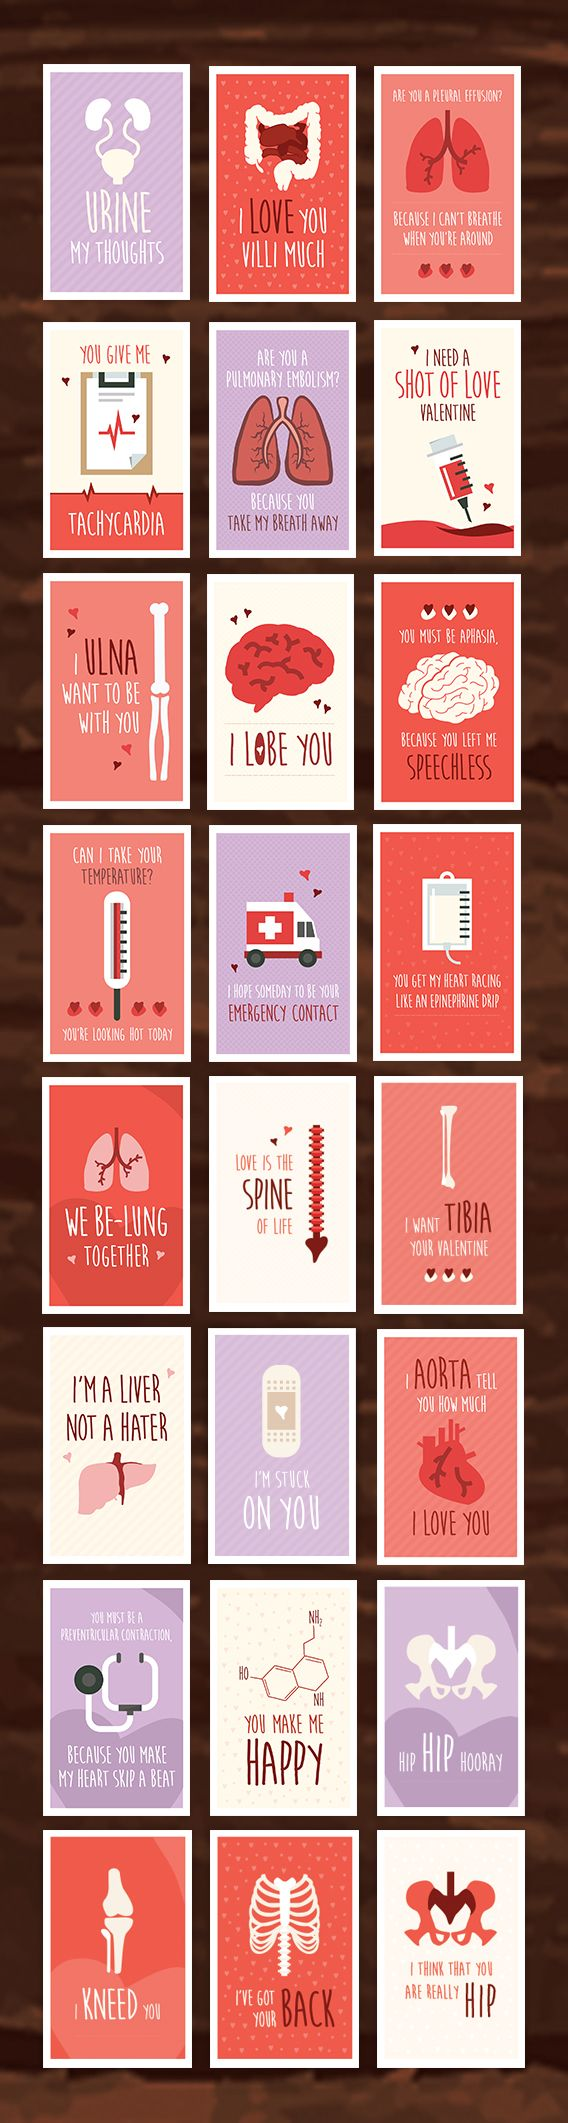 24 Pack Of Funny Medical Valentine S Day Cards Valentine Day Cards Funny Valentines Cards Medical Humor